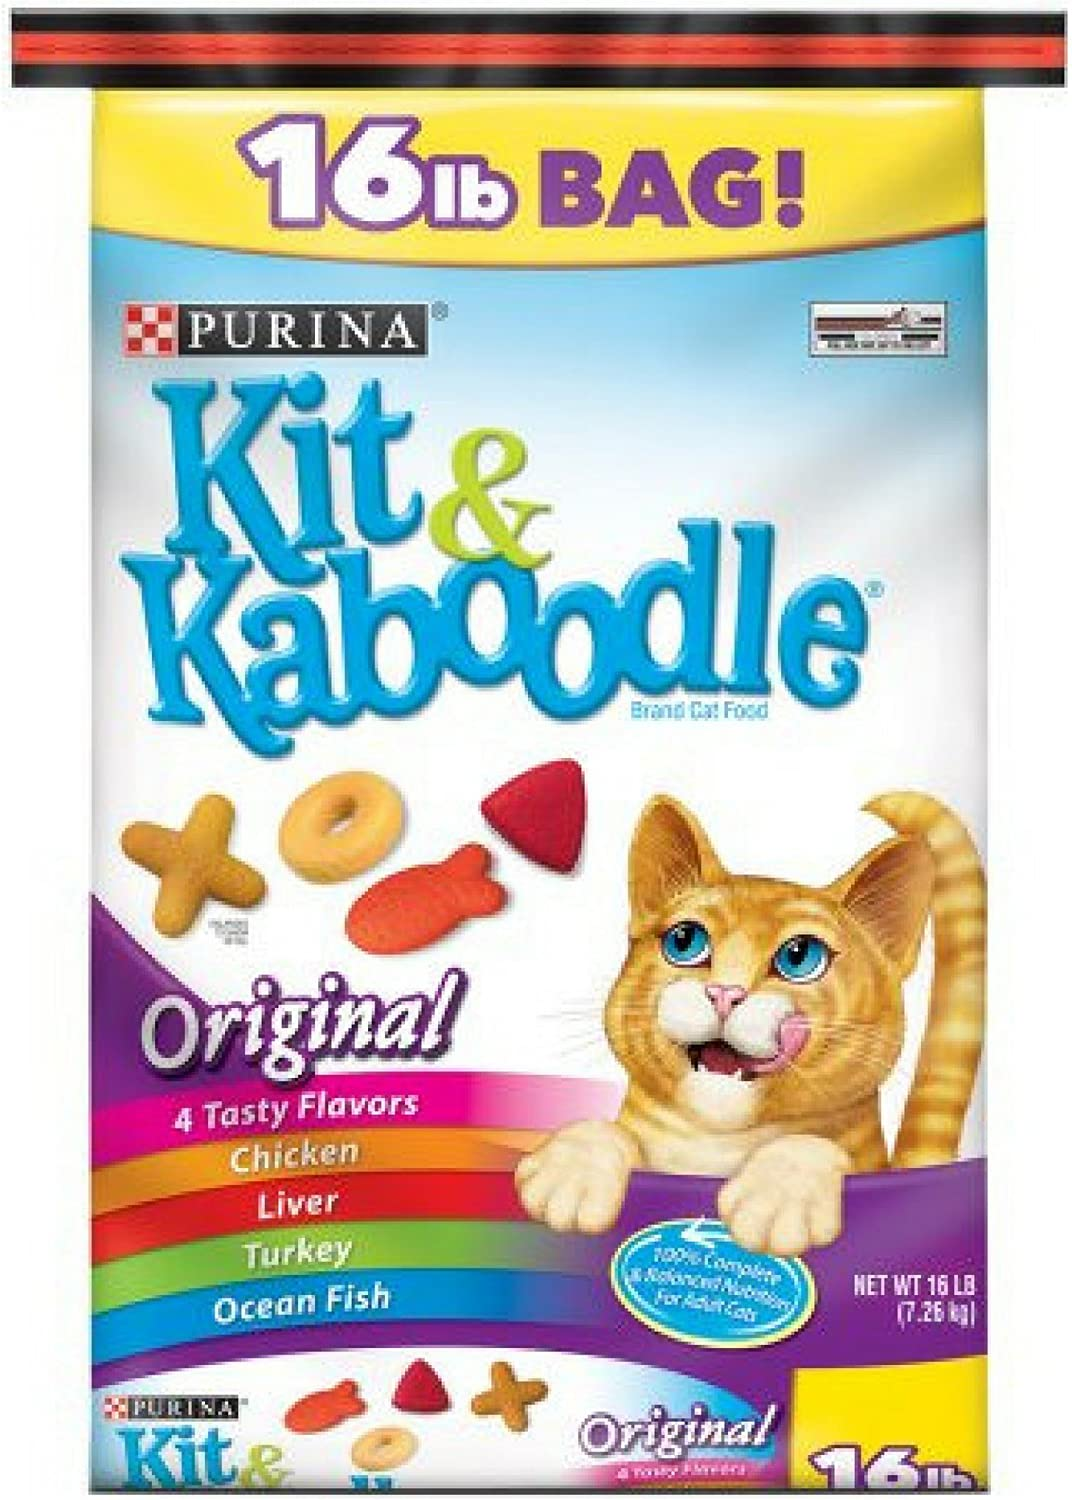 Purina Kit & Kaboodle Original Adult Dry Cat Food, 16 lb